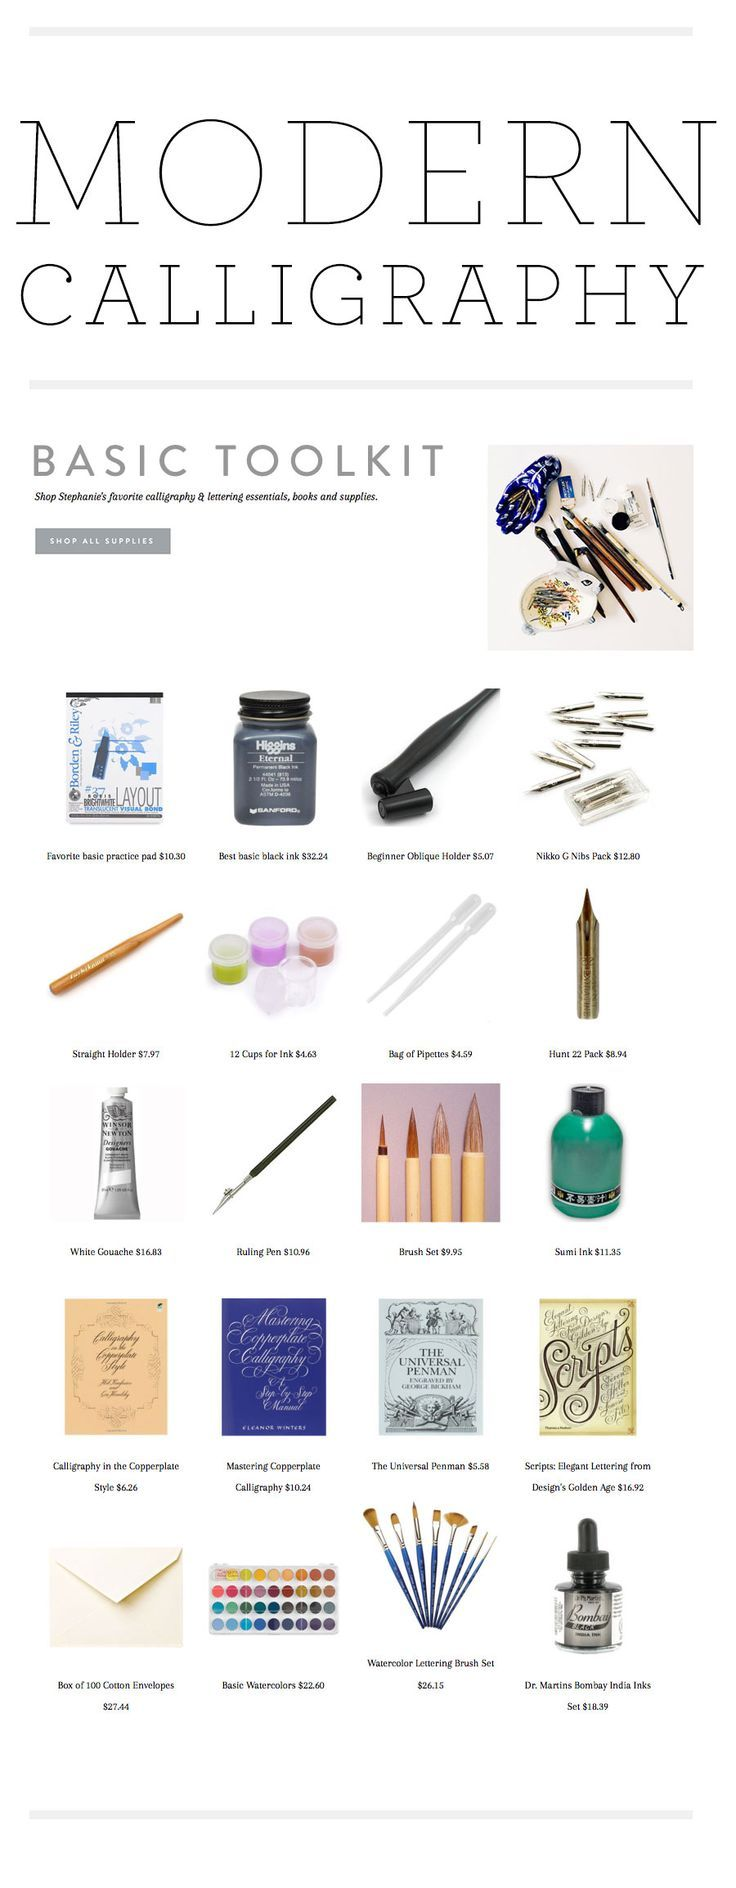 After many requests I have finally started adding my favorite calligraphy supplies and books into my shop! Today I am working on adding favorite alternative pens and tools for brush lettering too.